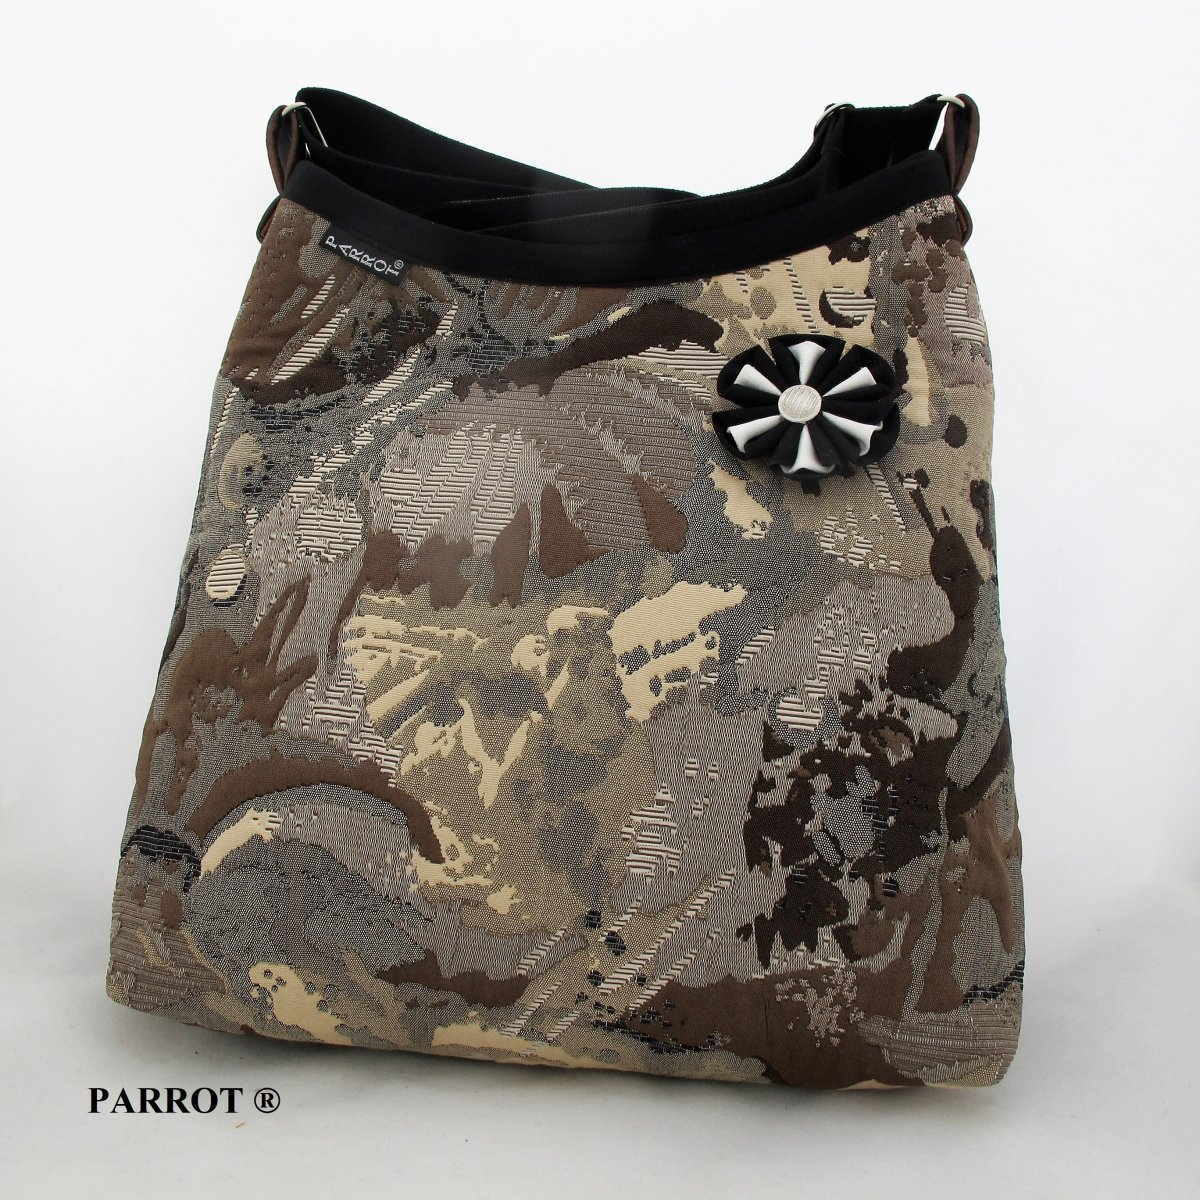 ABSTRACT STONE BAG * BROWN * PARROT®